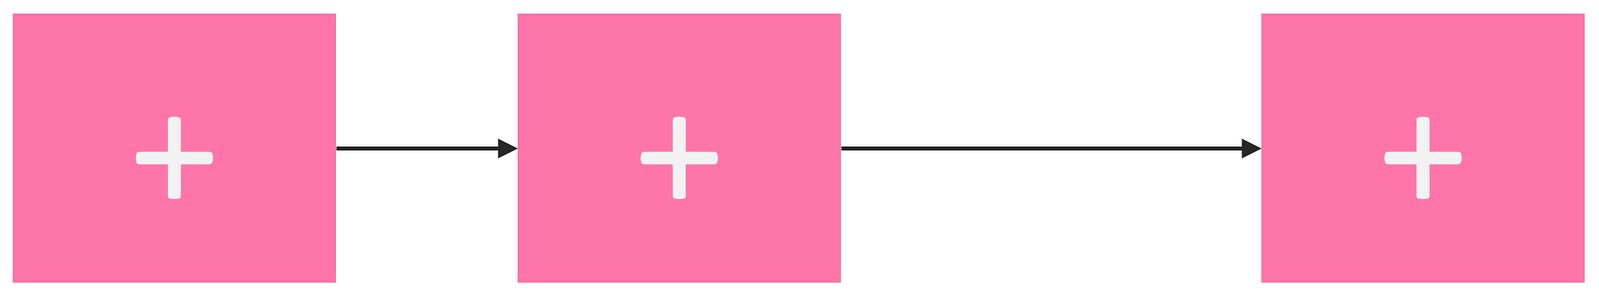 A pink block flowing over time to another pink block flowing over a longer time to another pink block.